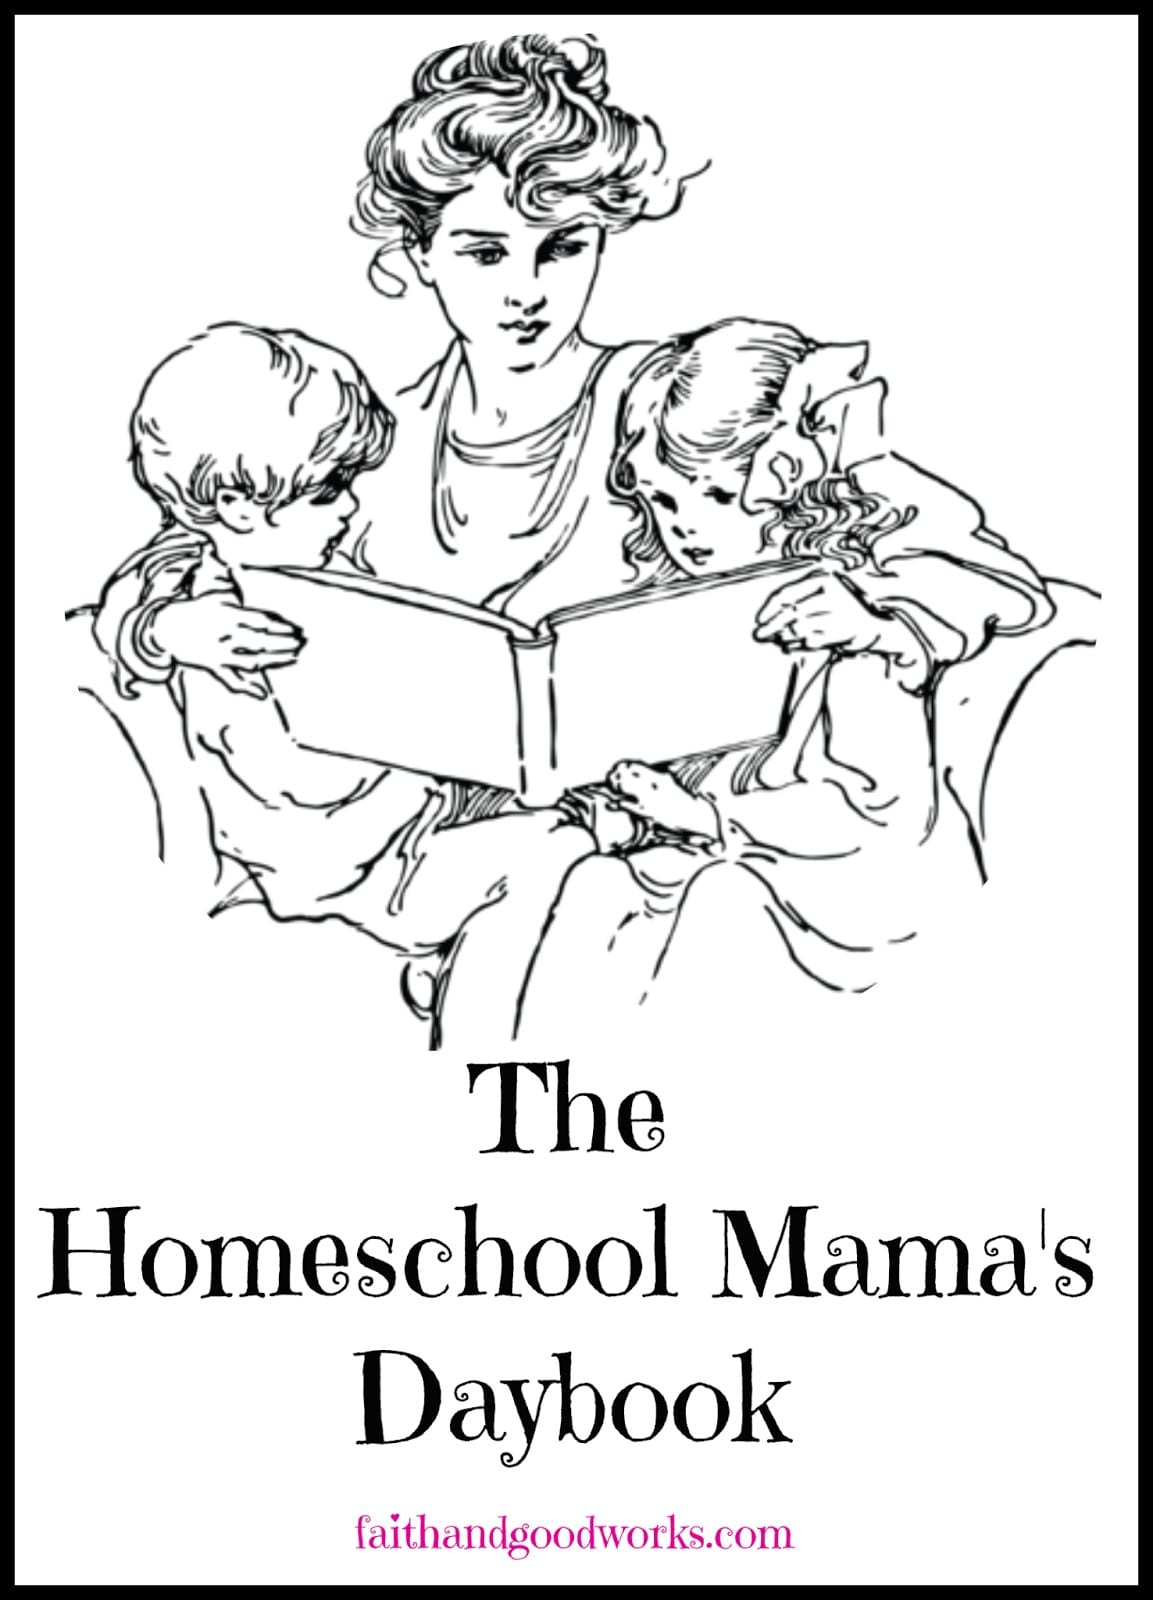 The Homeschool Mama's Daybook #4